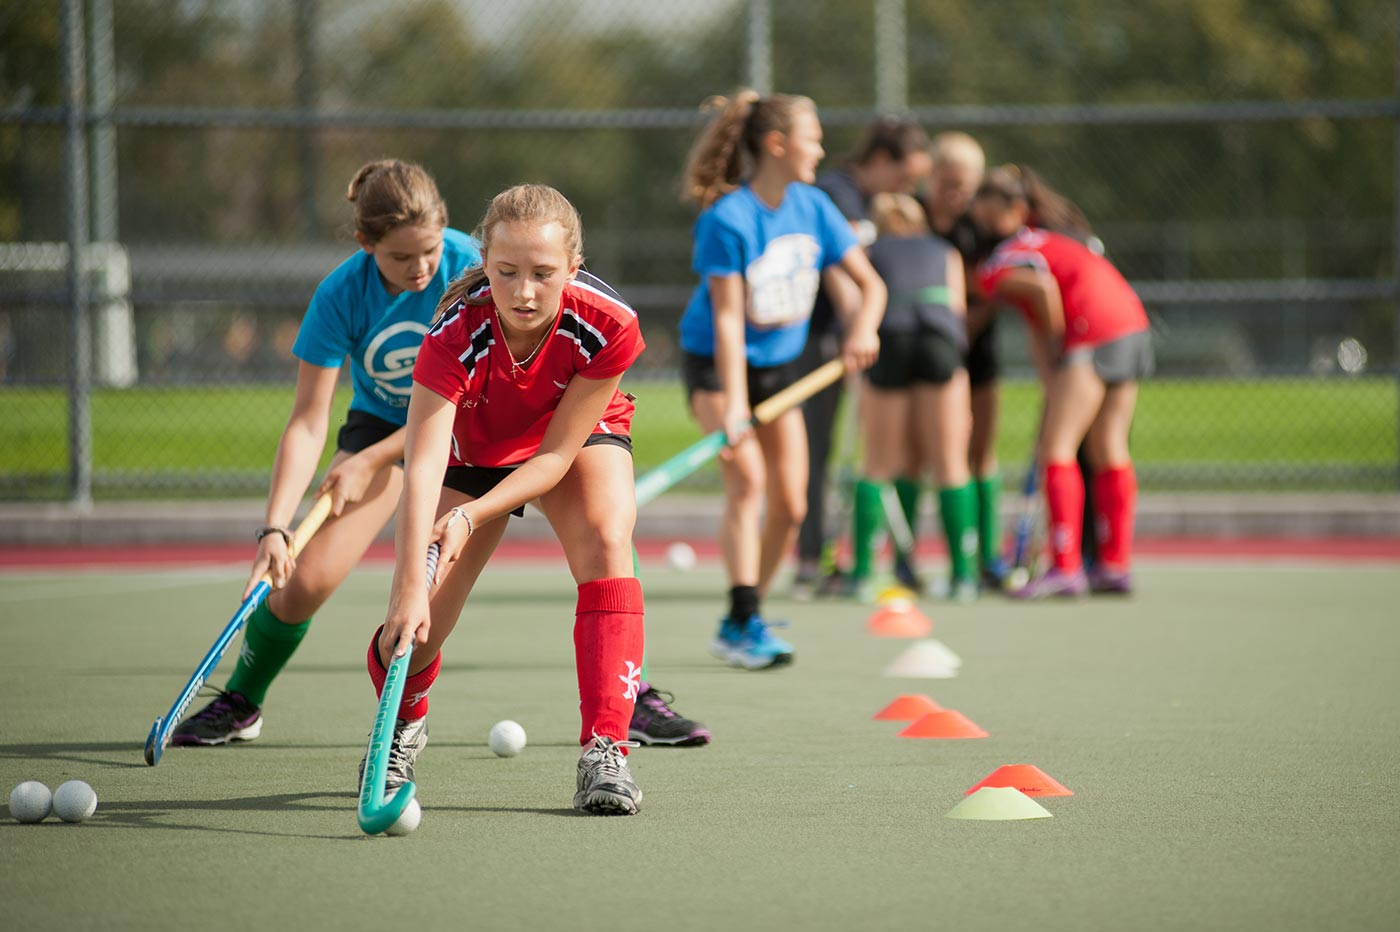 Field Hockey Academy